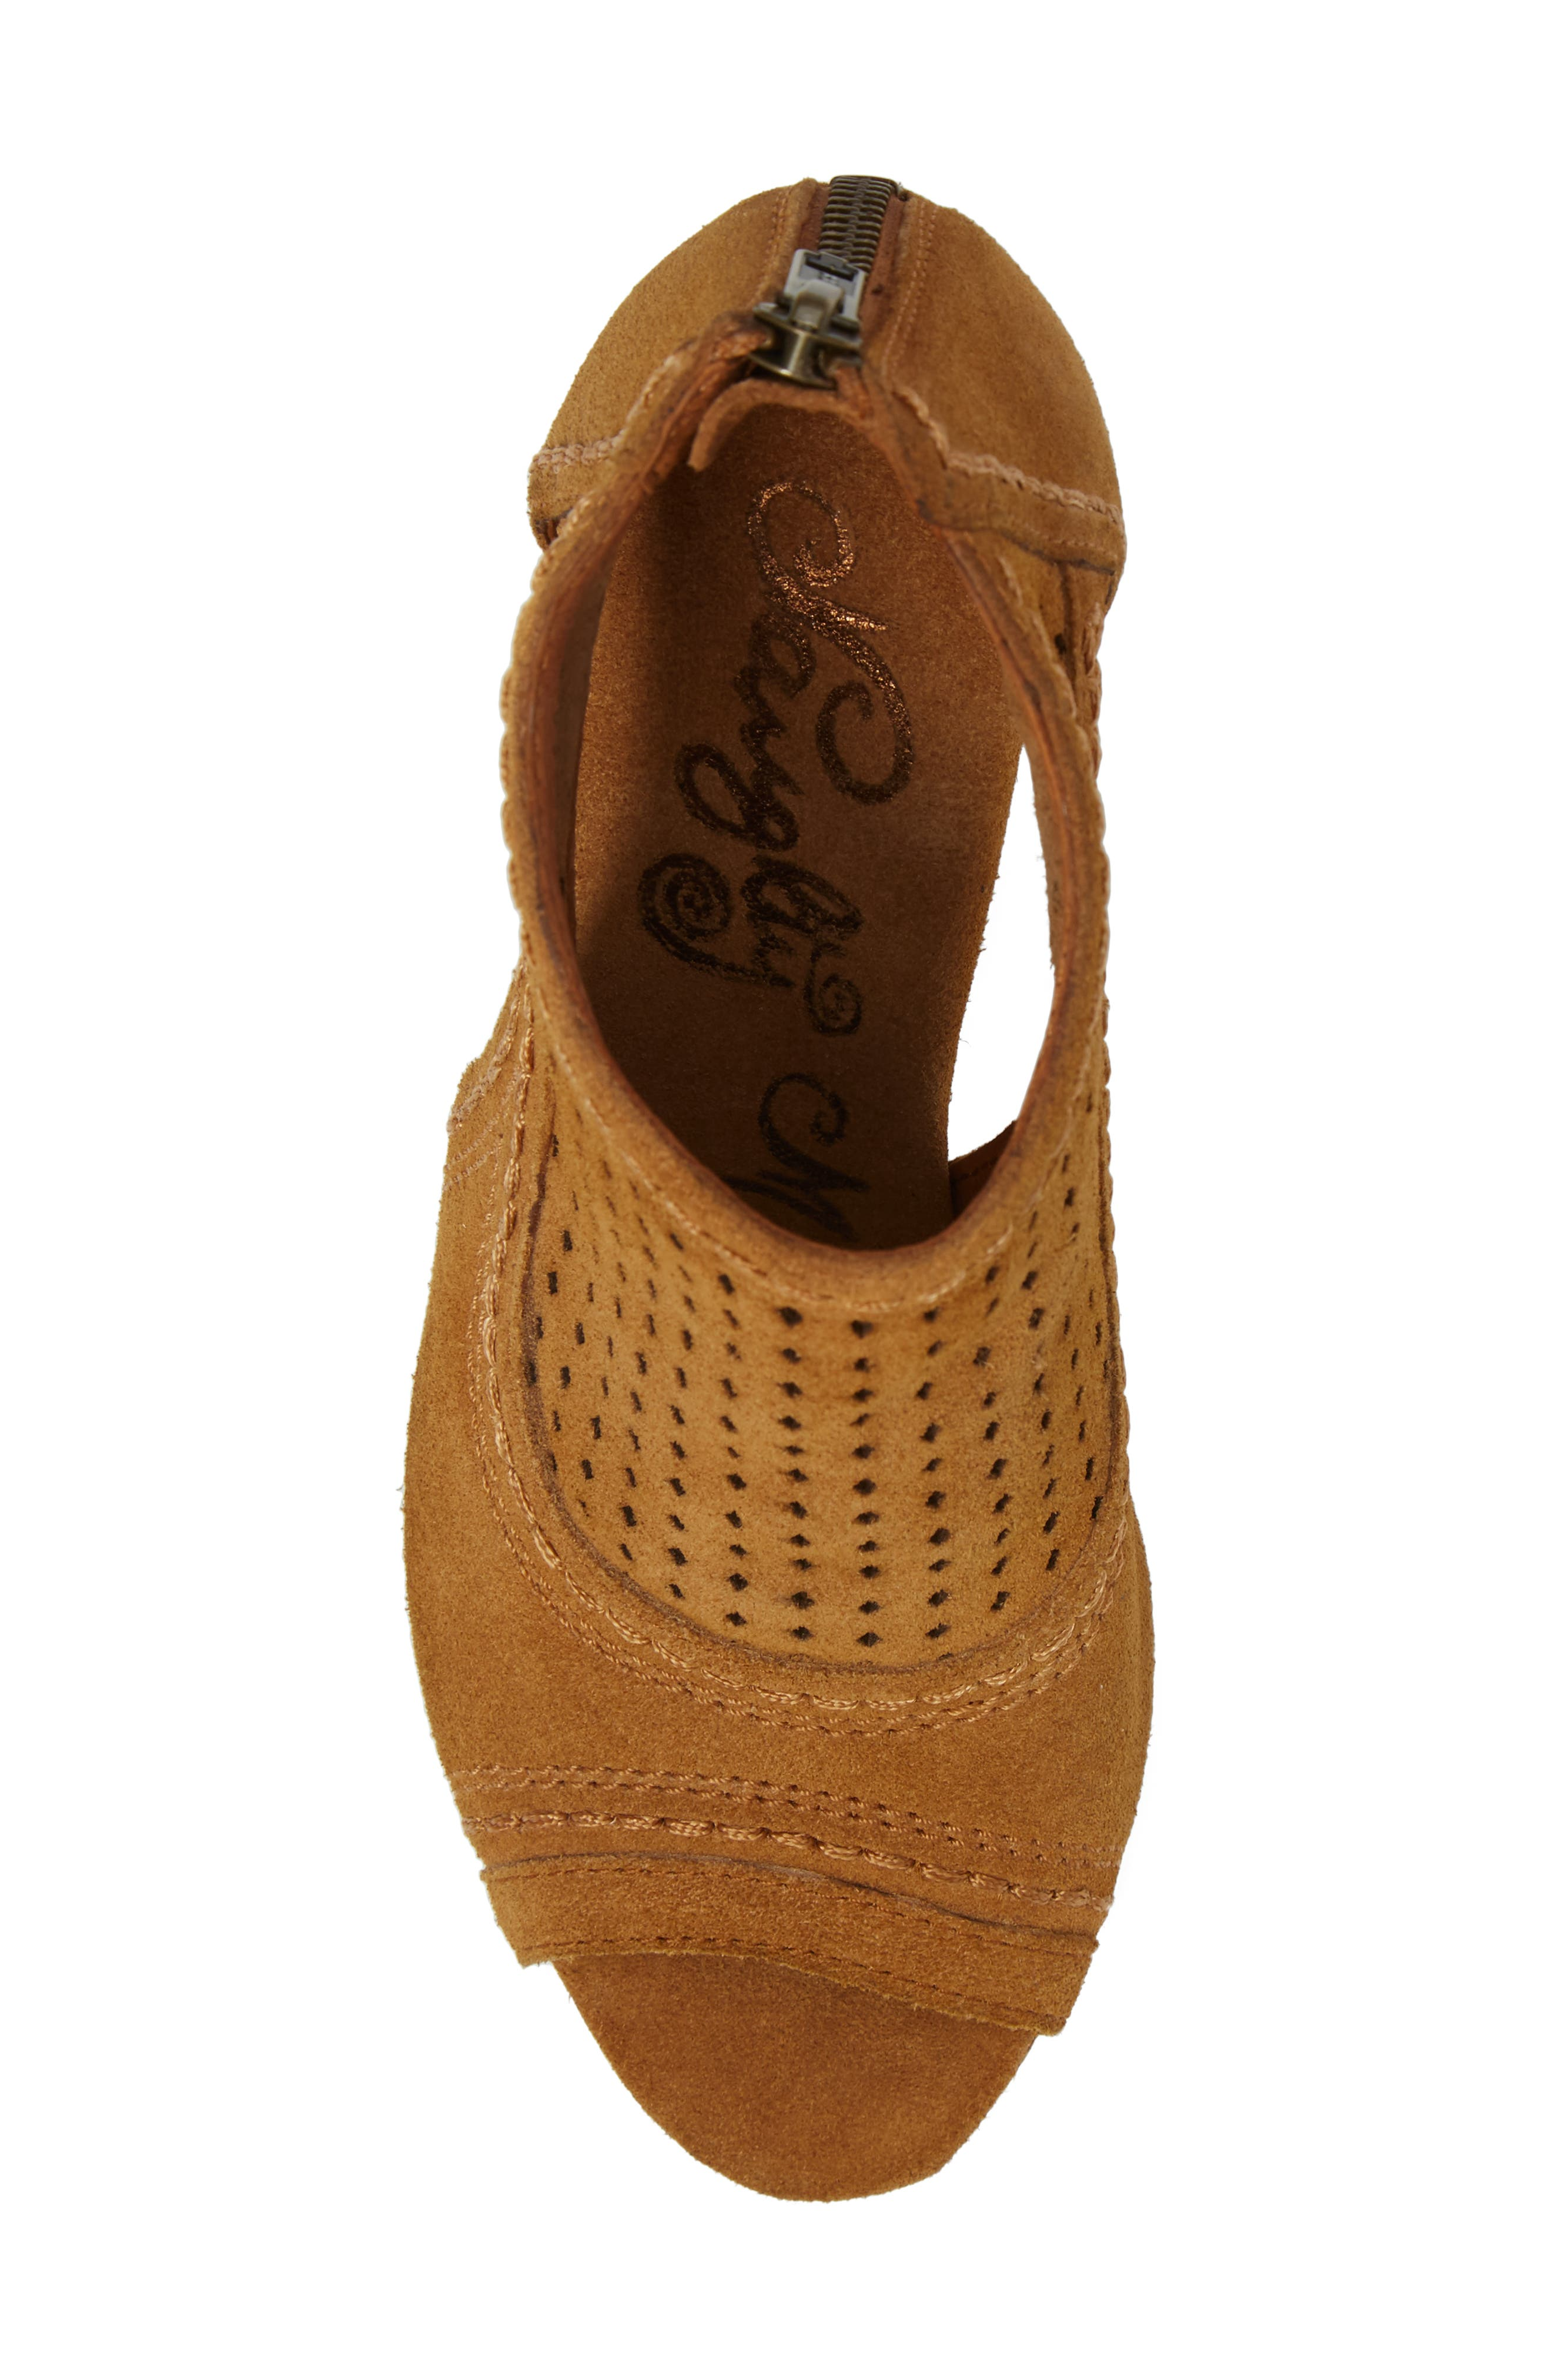 Sharon Perforated Wedge Sandal,                             Alternate thumbnail 5, color,                             Sandcastle Suede